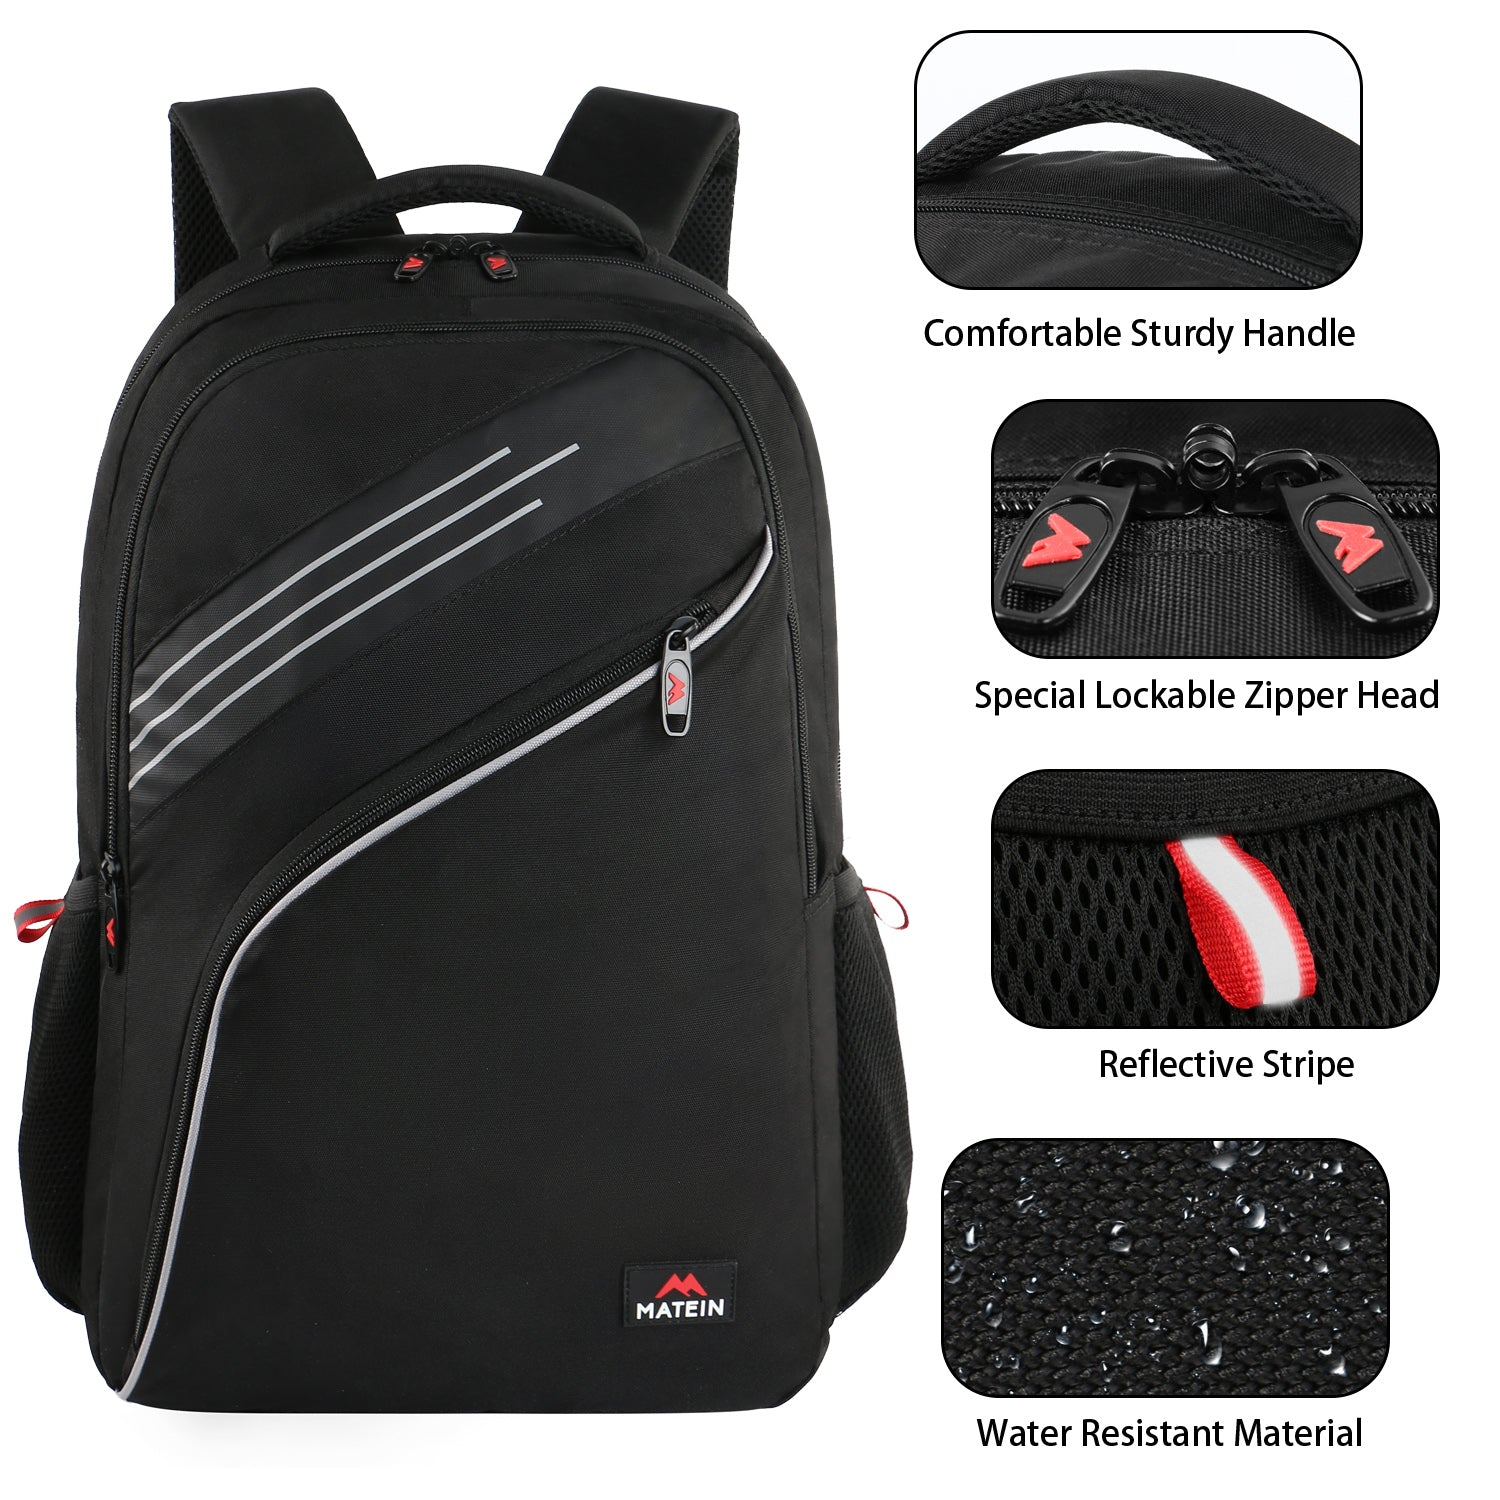 Matein Mijja Student Backpack